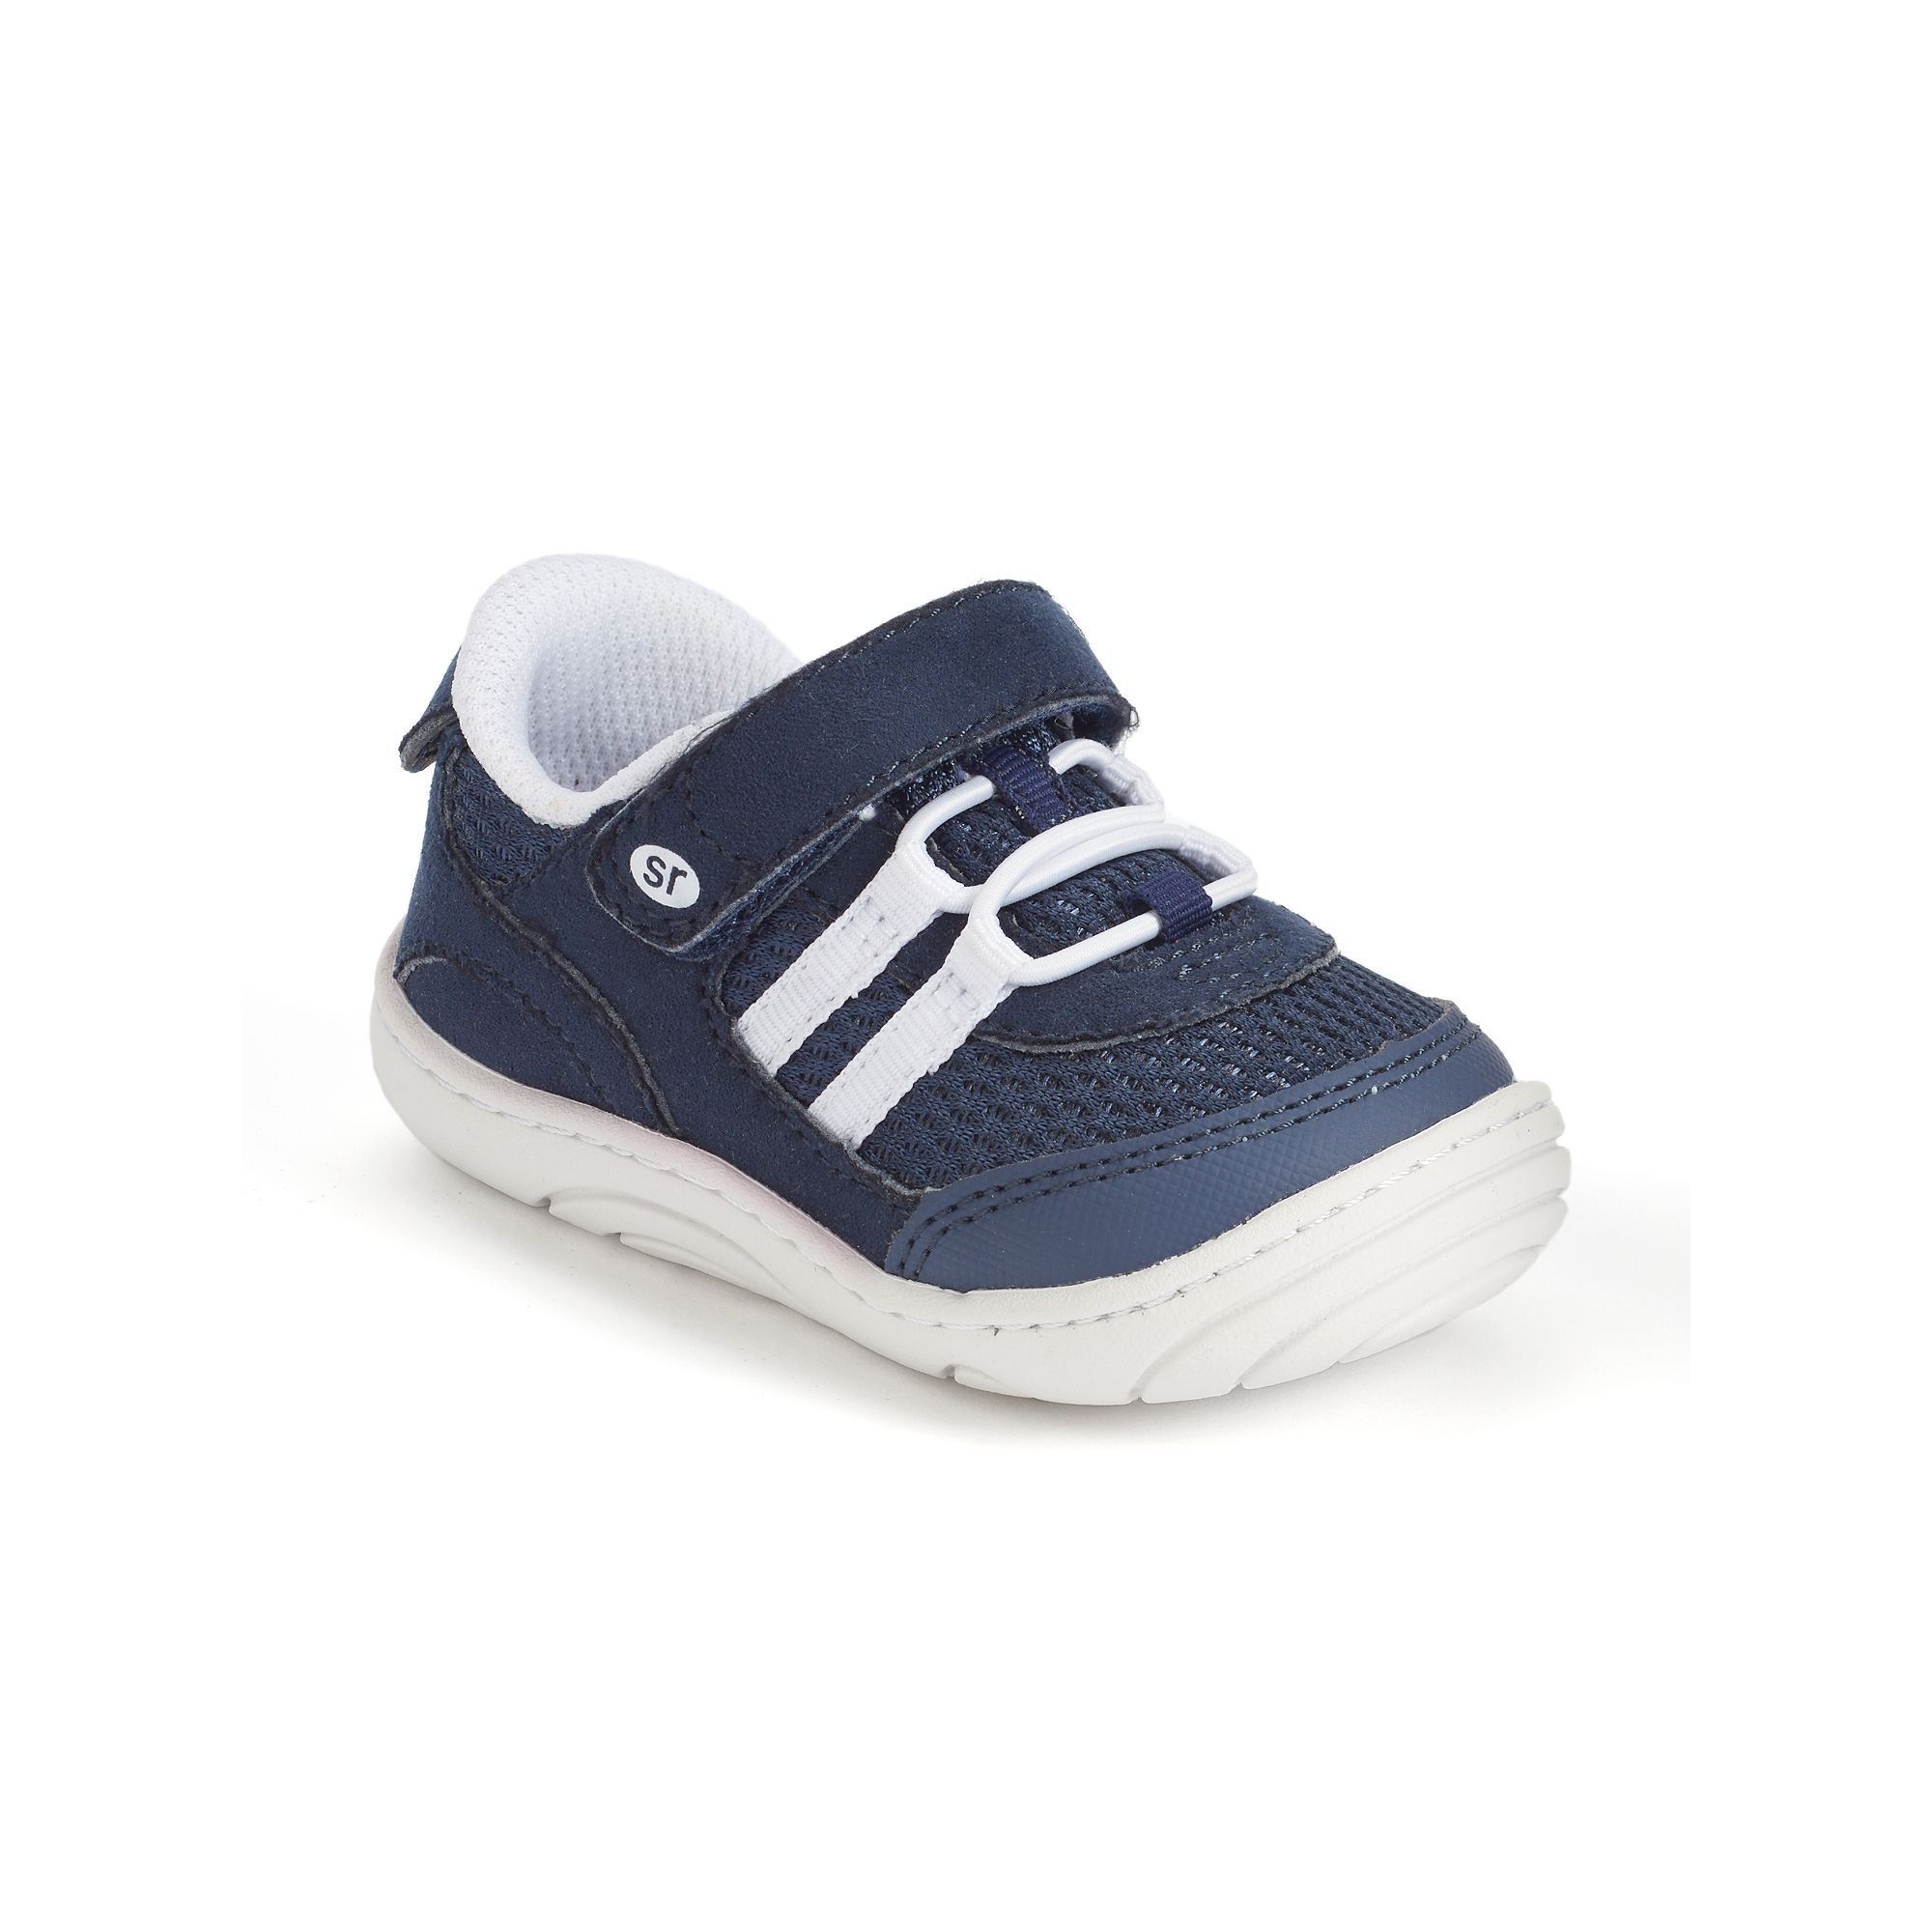 Stride Rite Ivan Baby Boys Sneakers Size 3 5 T Blue Navy